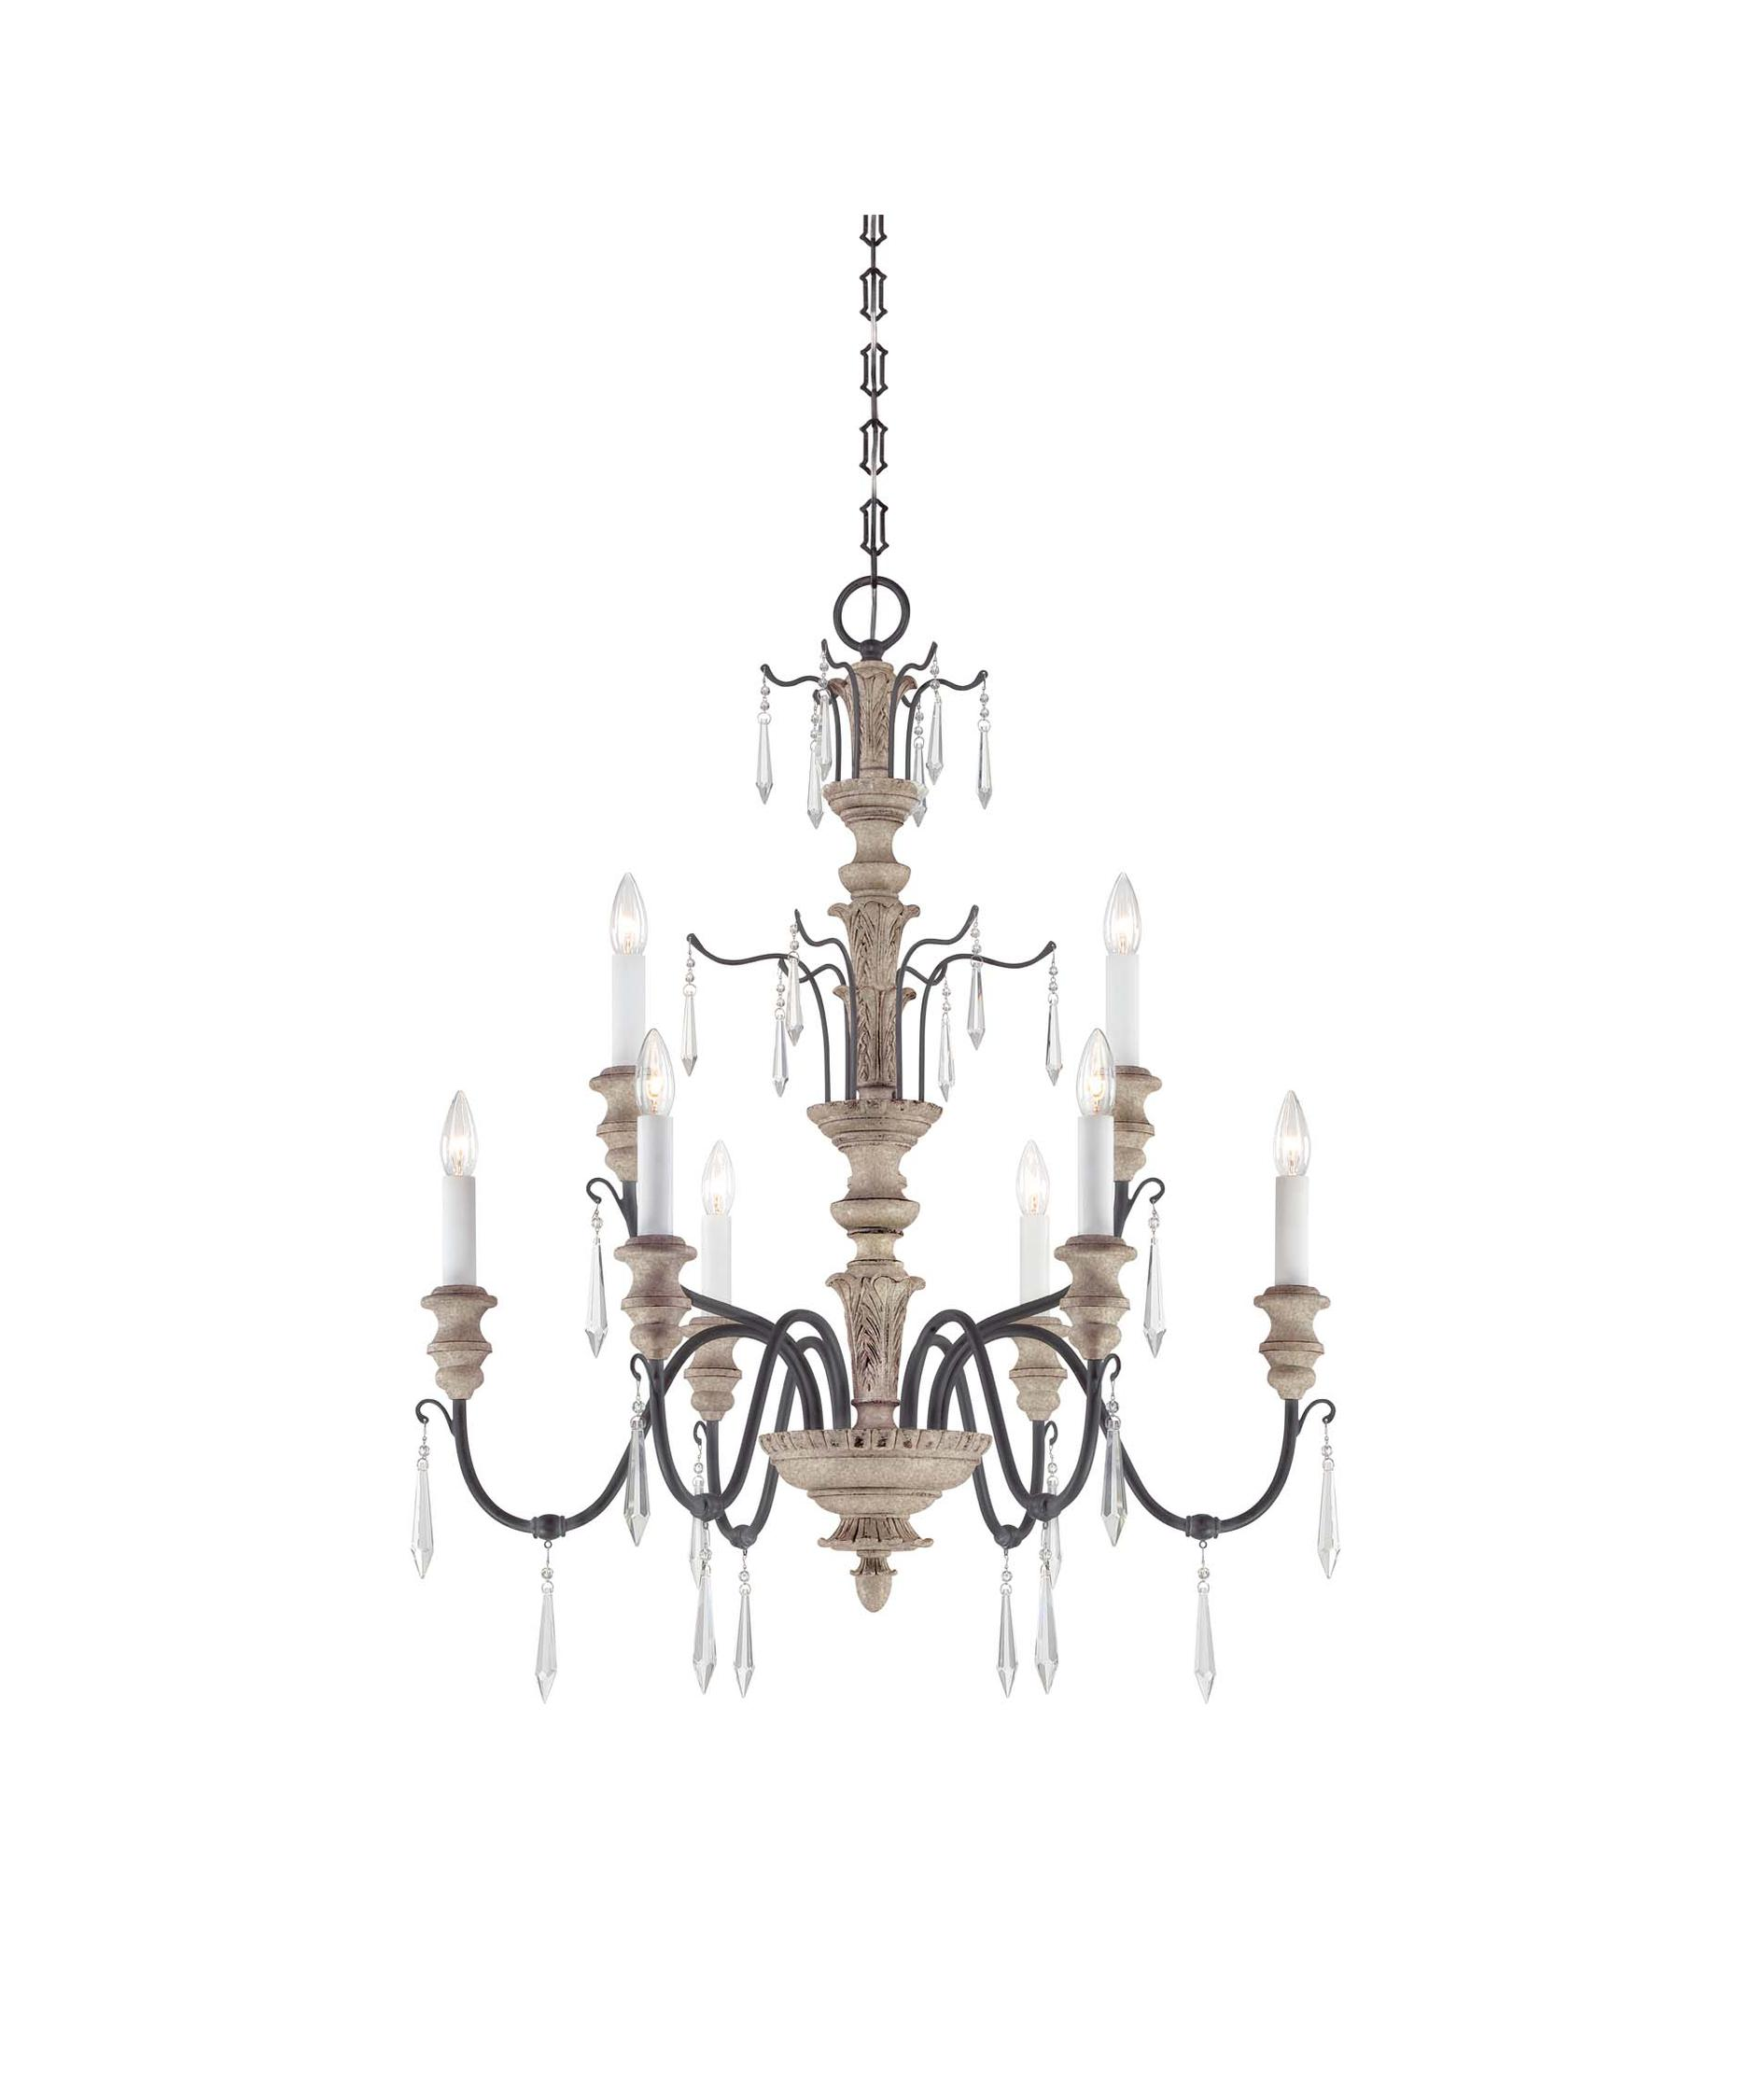 shown in distressed white wood and iron finish - Savoy Lighting